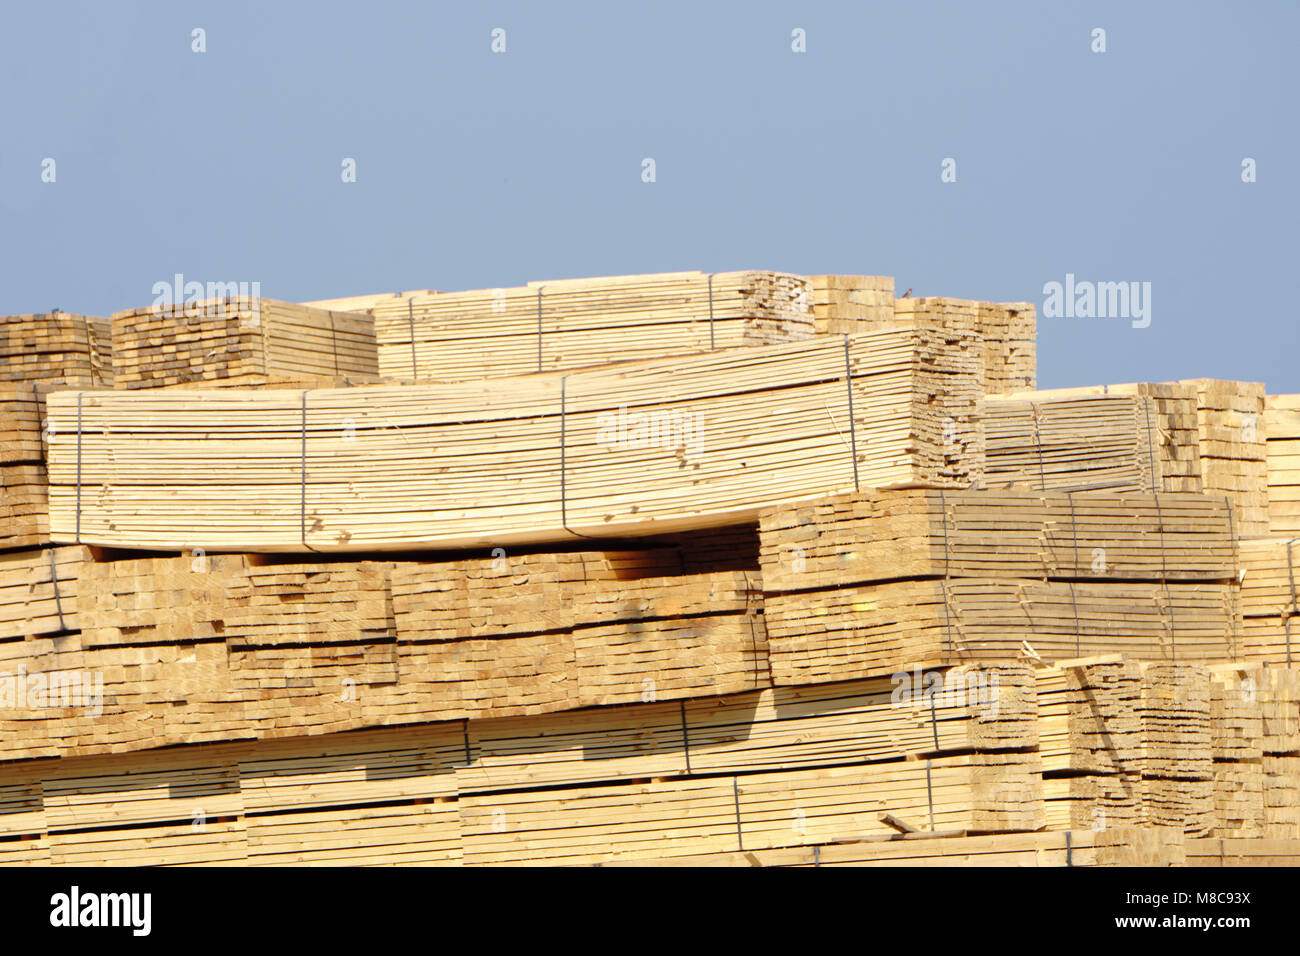 Timber is ready for shipping at a dock, Island, Stock Photo